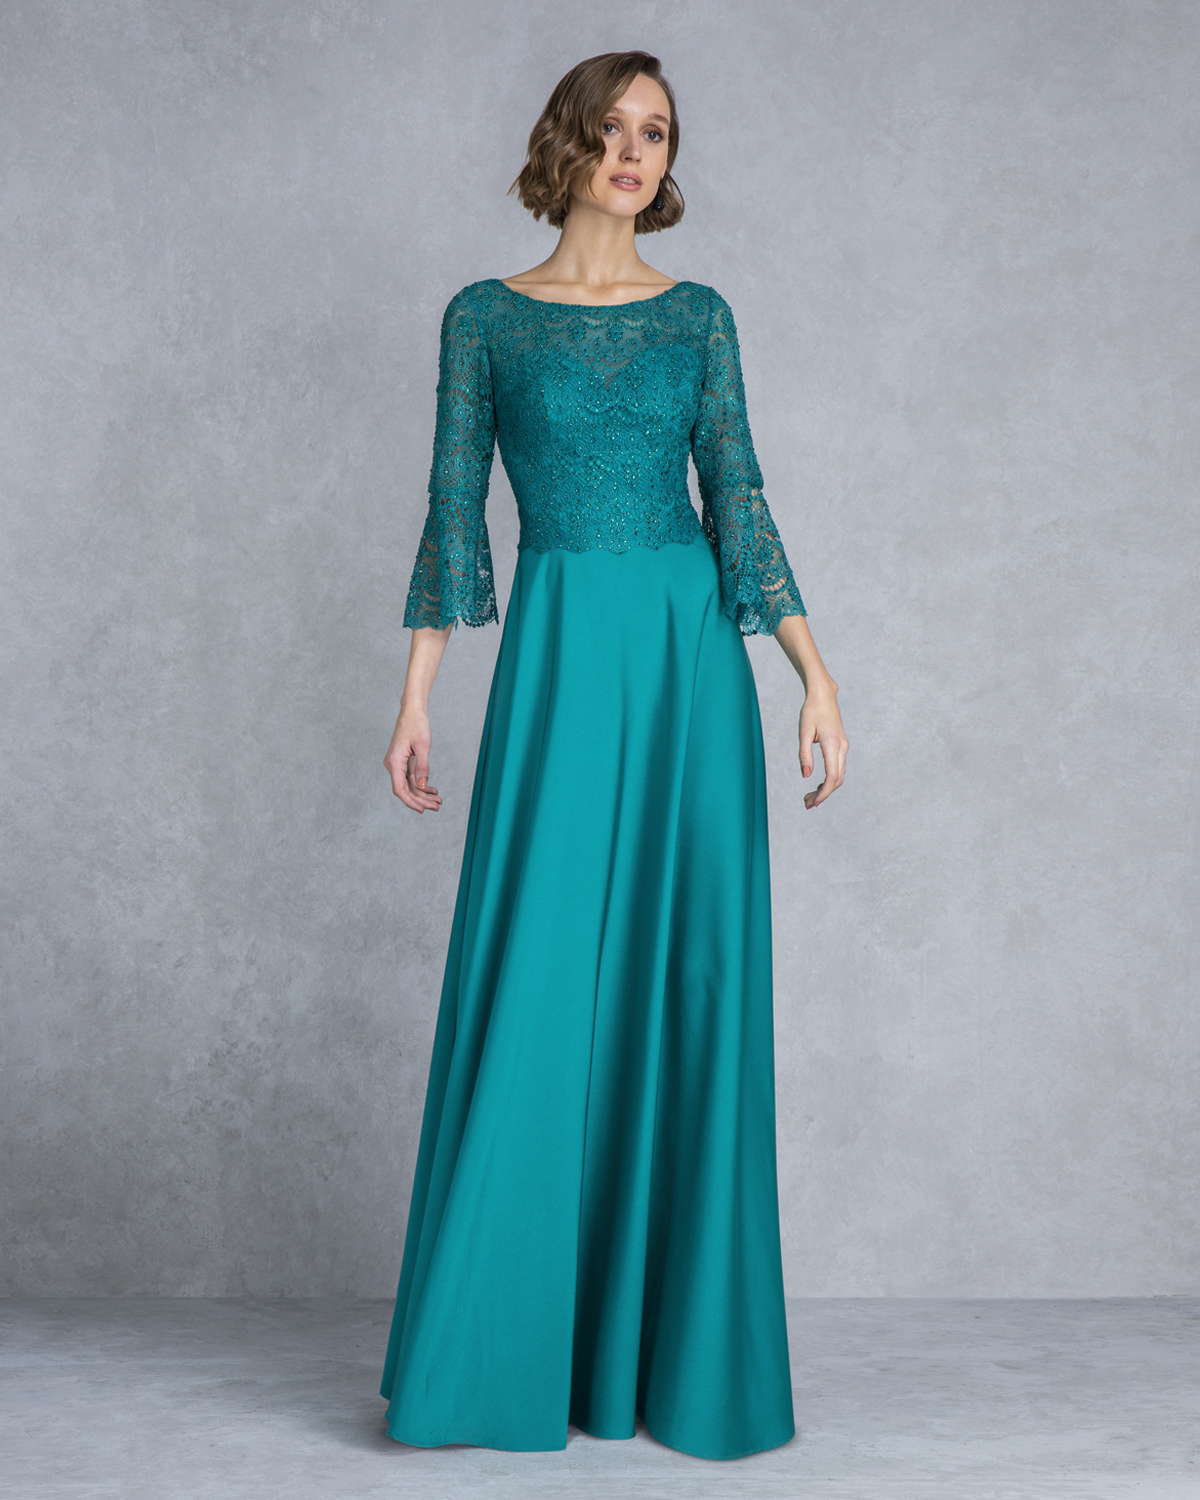 Classic Dresses / Long evening dress with lace top and sleeves